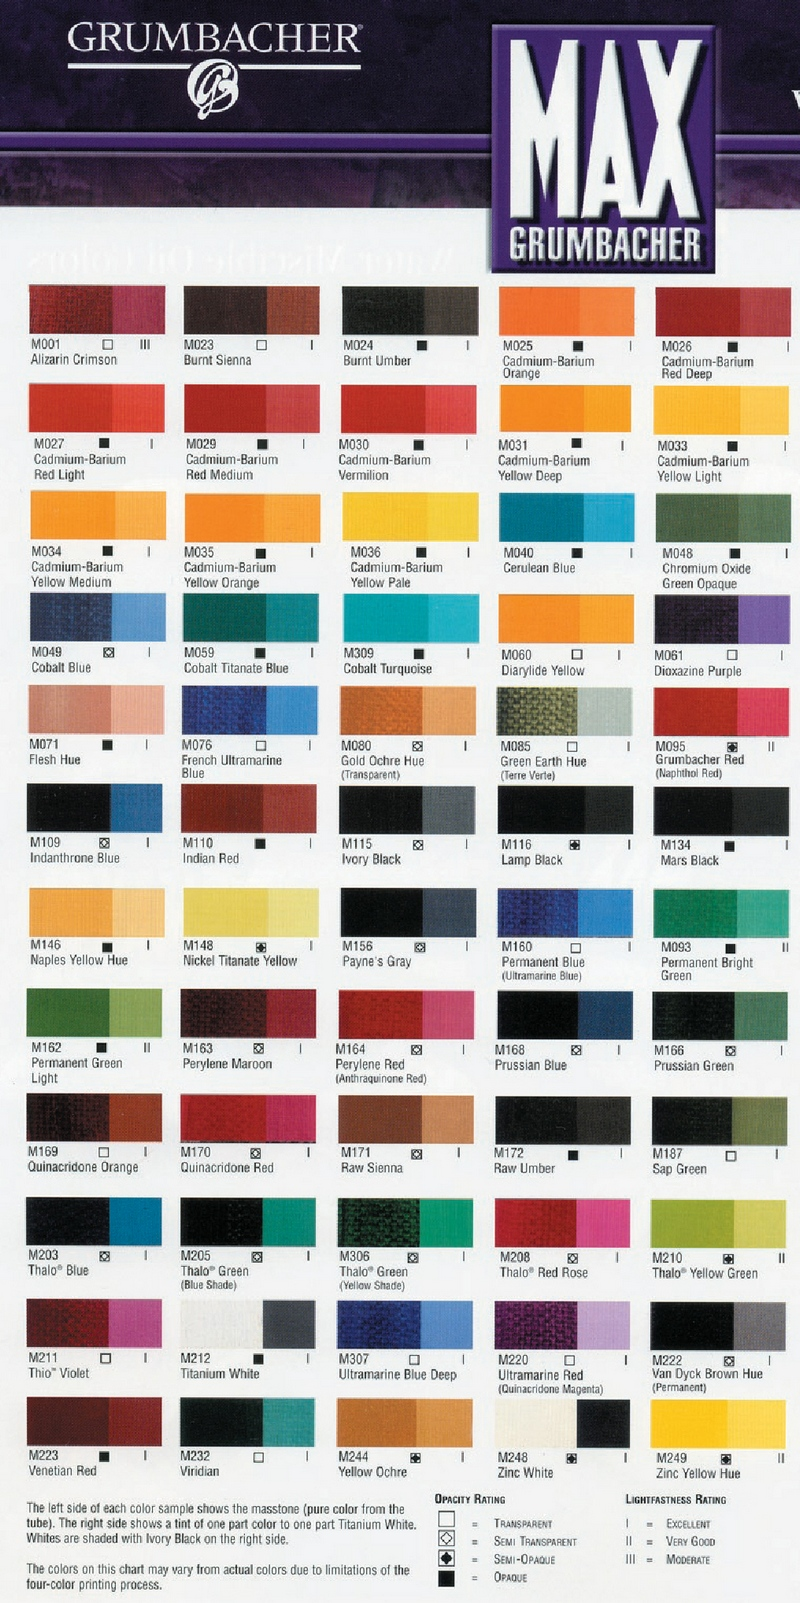 Manufacturers color charts for water soluble oils grumbacher max nvjuhfo Choice Image